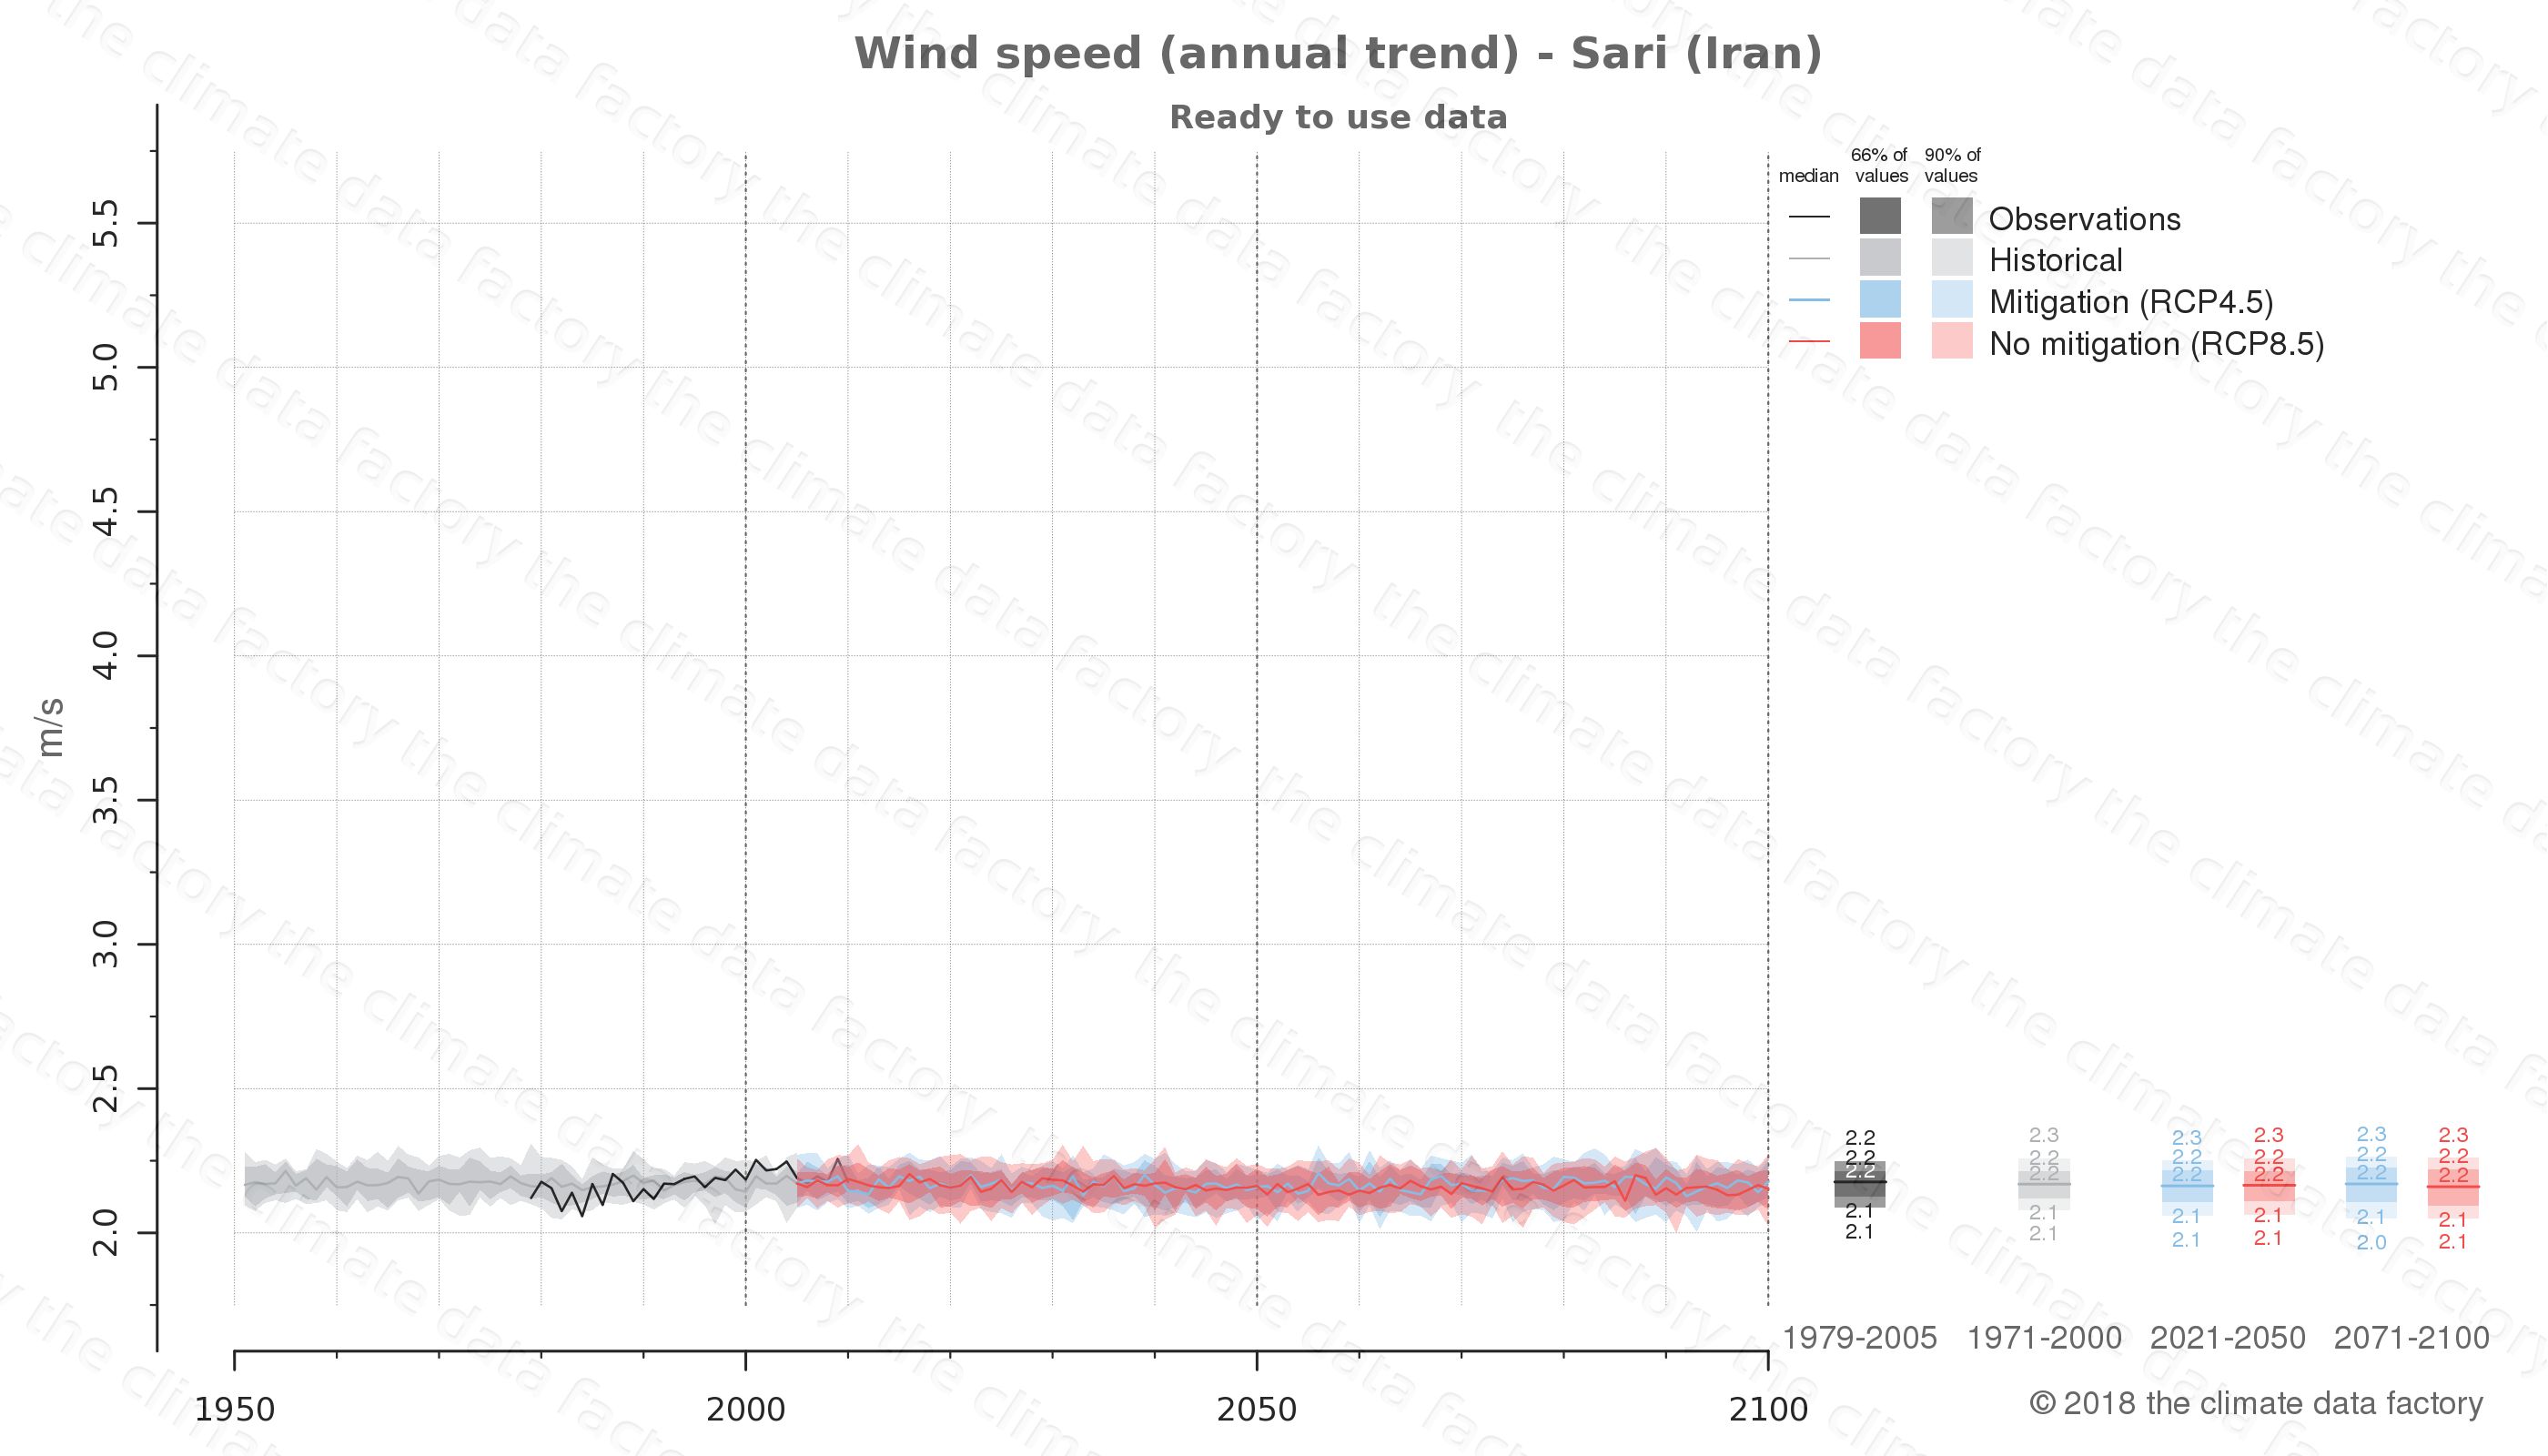 climate change data policy adaptation climate graph city data wind-speed sari iran